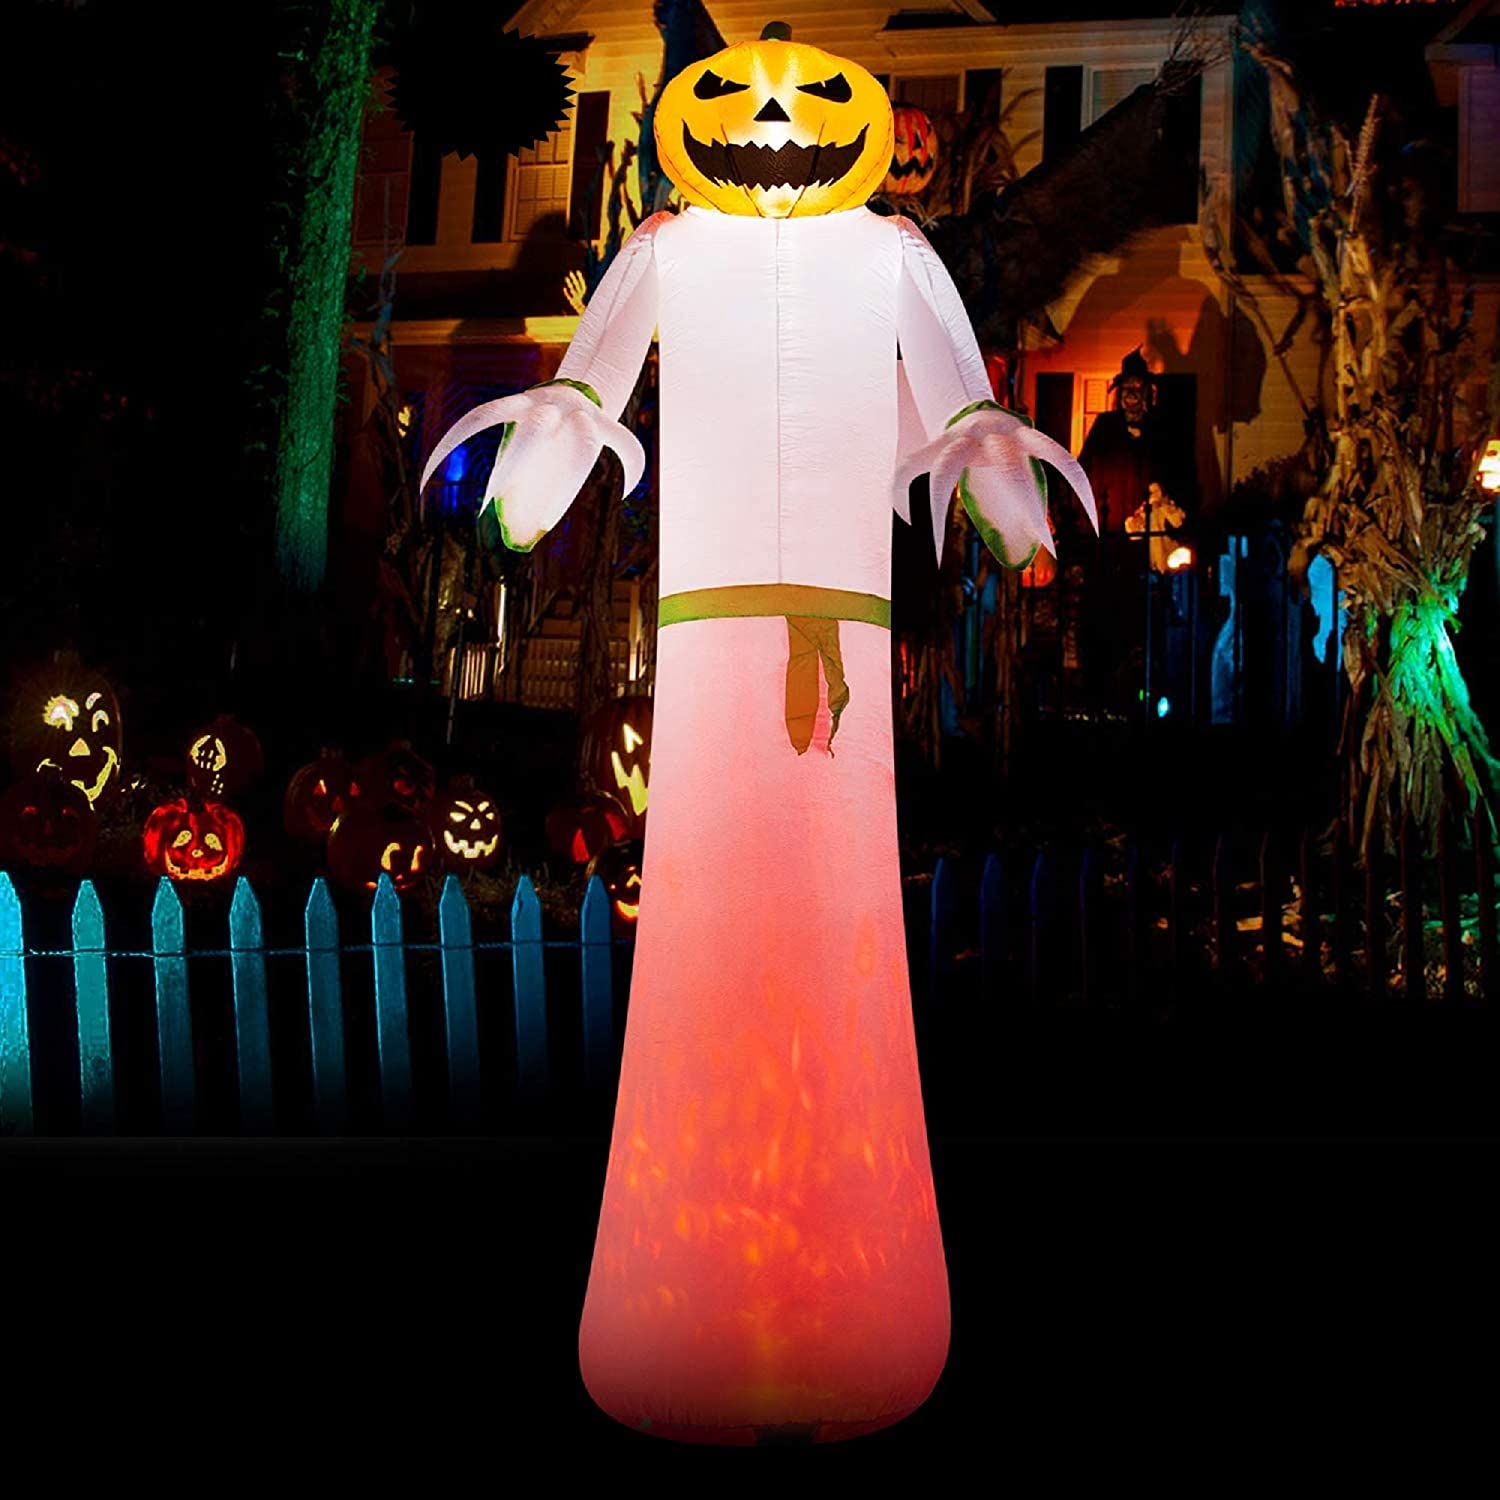 SEASONJOY 12 Ft Halloween Inflatables Decorat Pumpkin New product type with Ghost Latest item